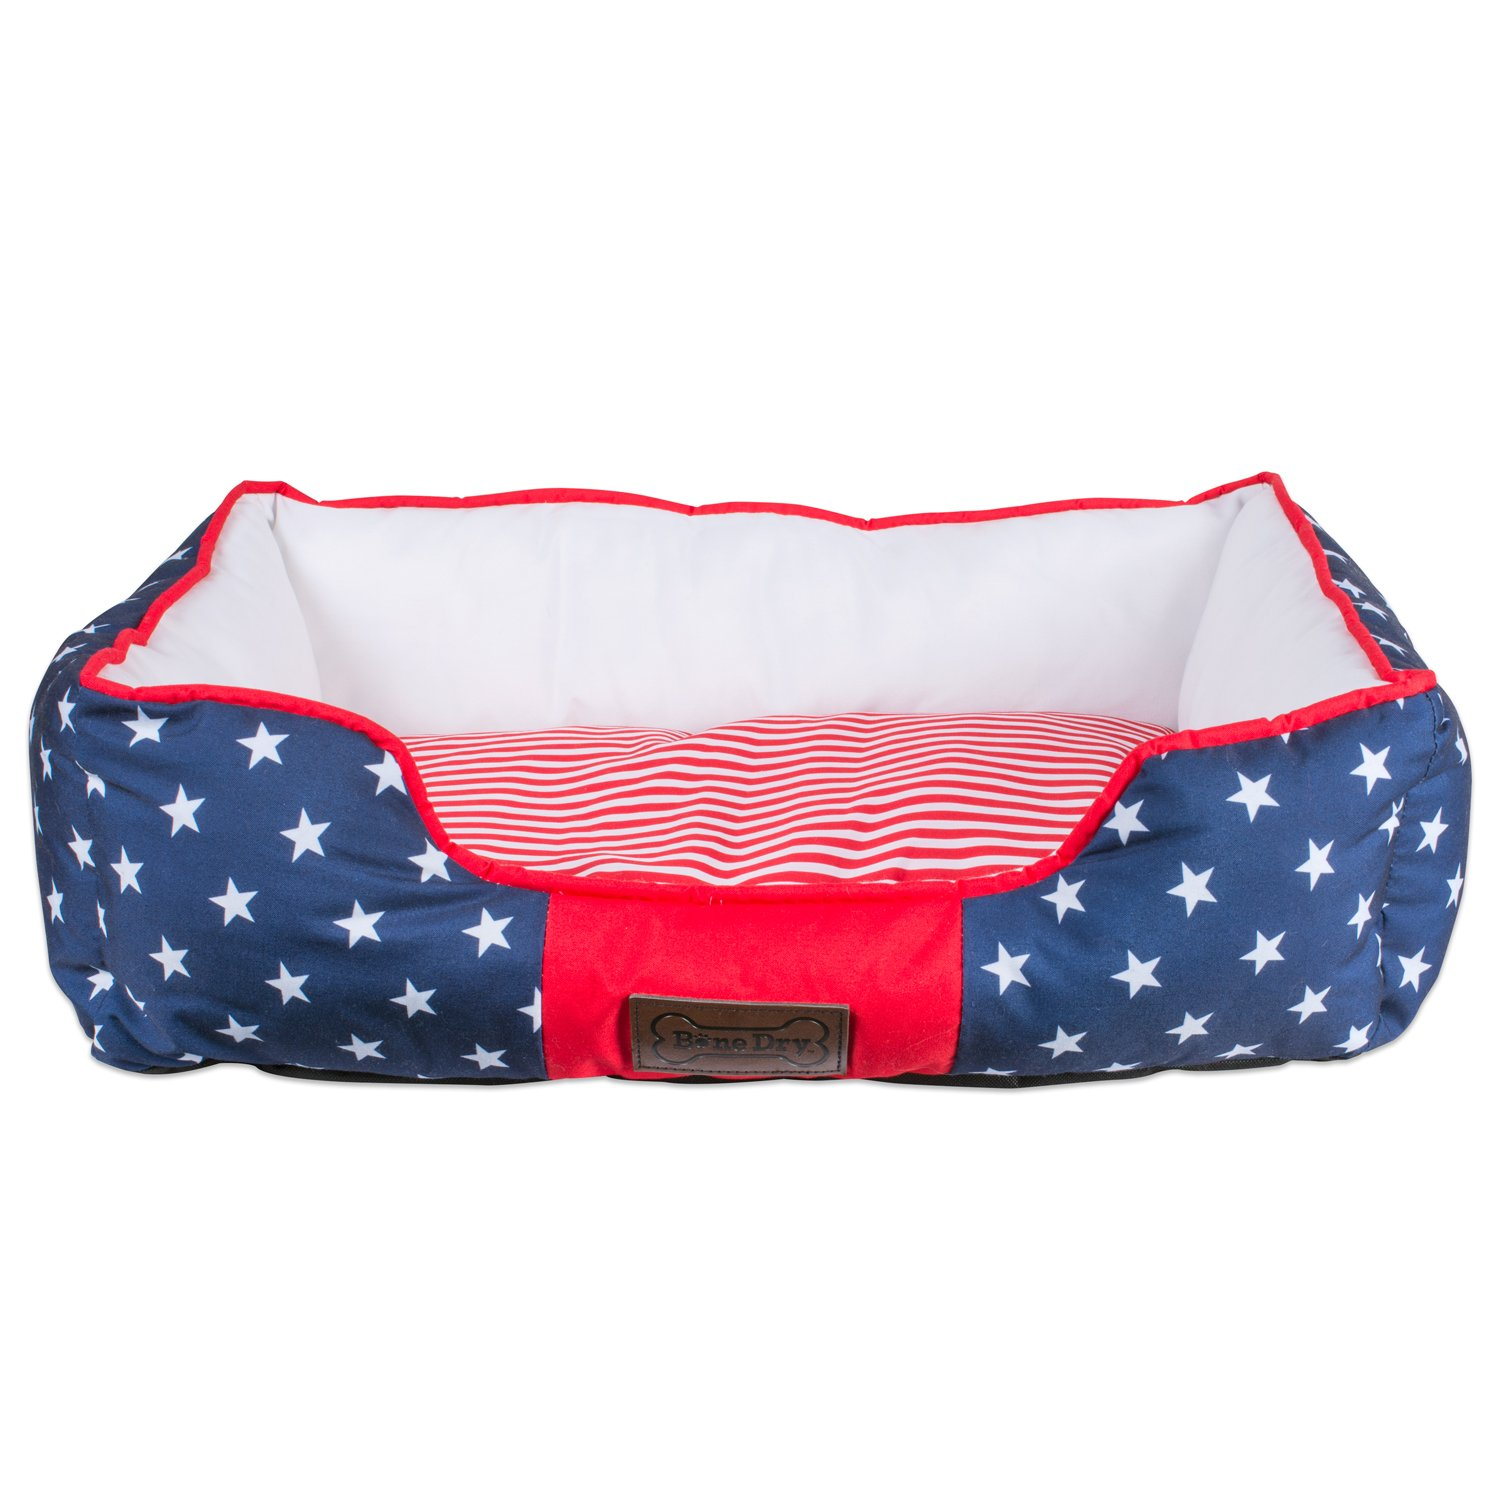 DII Bone Dry 4th of July Stars & Stripes Pet Bed, 28x20x8  Medium Rectangle Bed for Dogs Or Cats